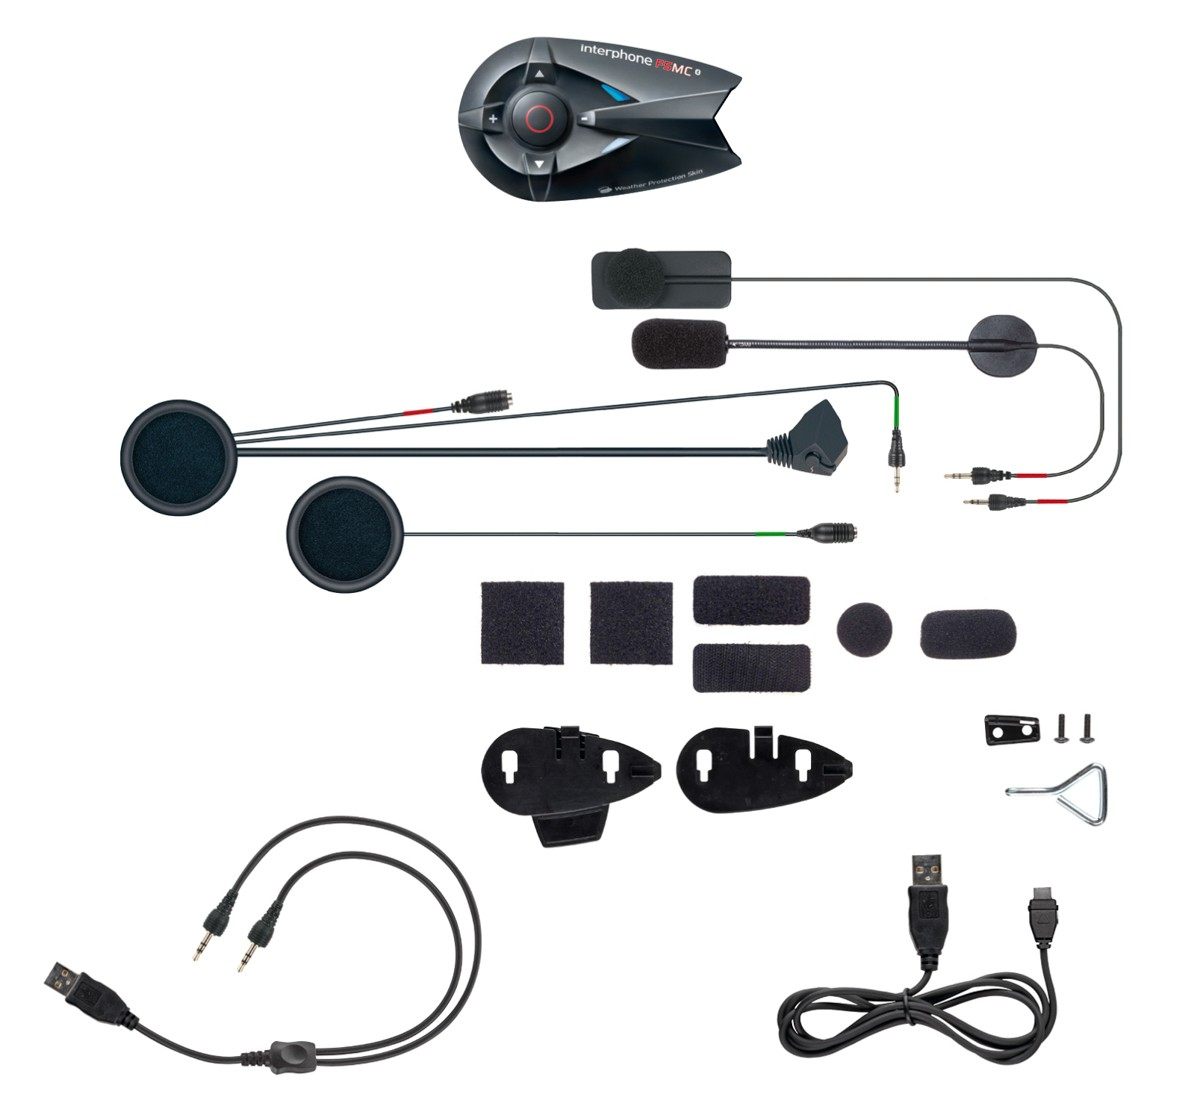 Interphone F5MC Bluetooth Helmet Headset - INTERPHONEF5MC - Interphone Wireless